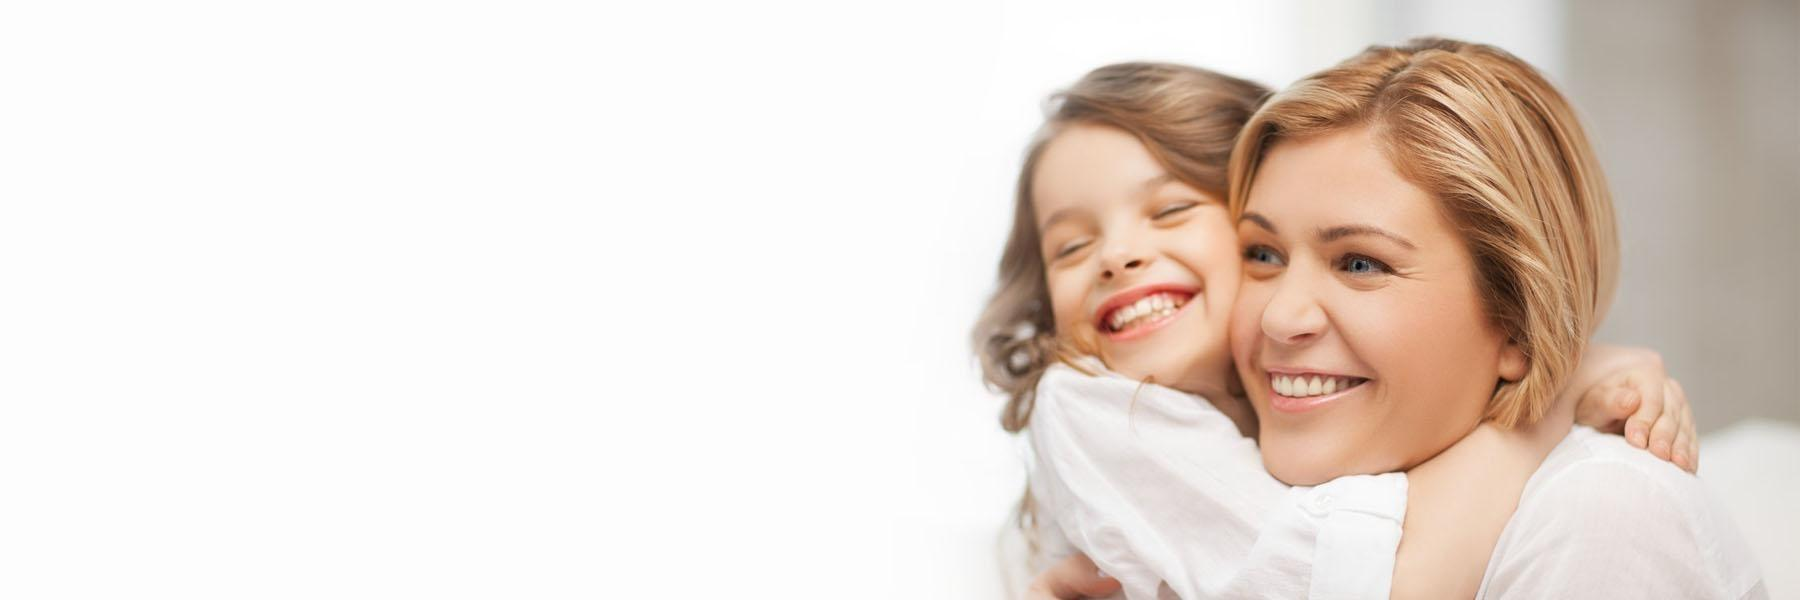 Children's Dentistry in Pikesville, MD banner image